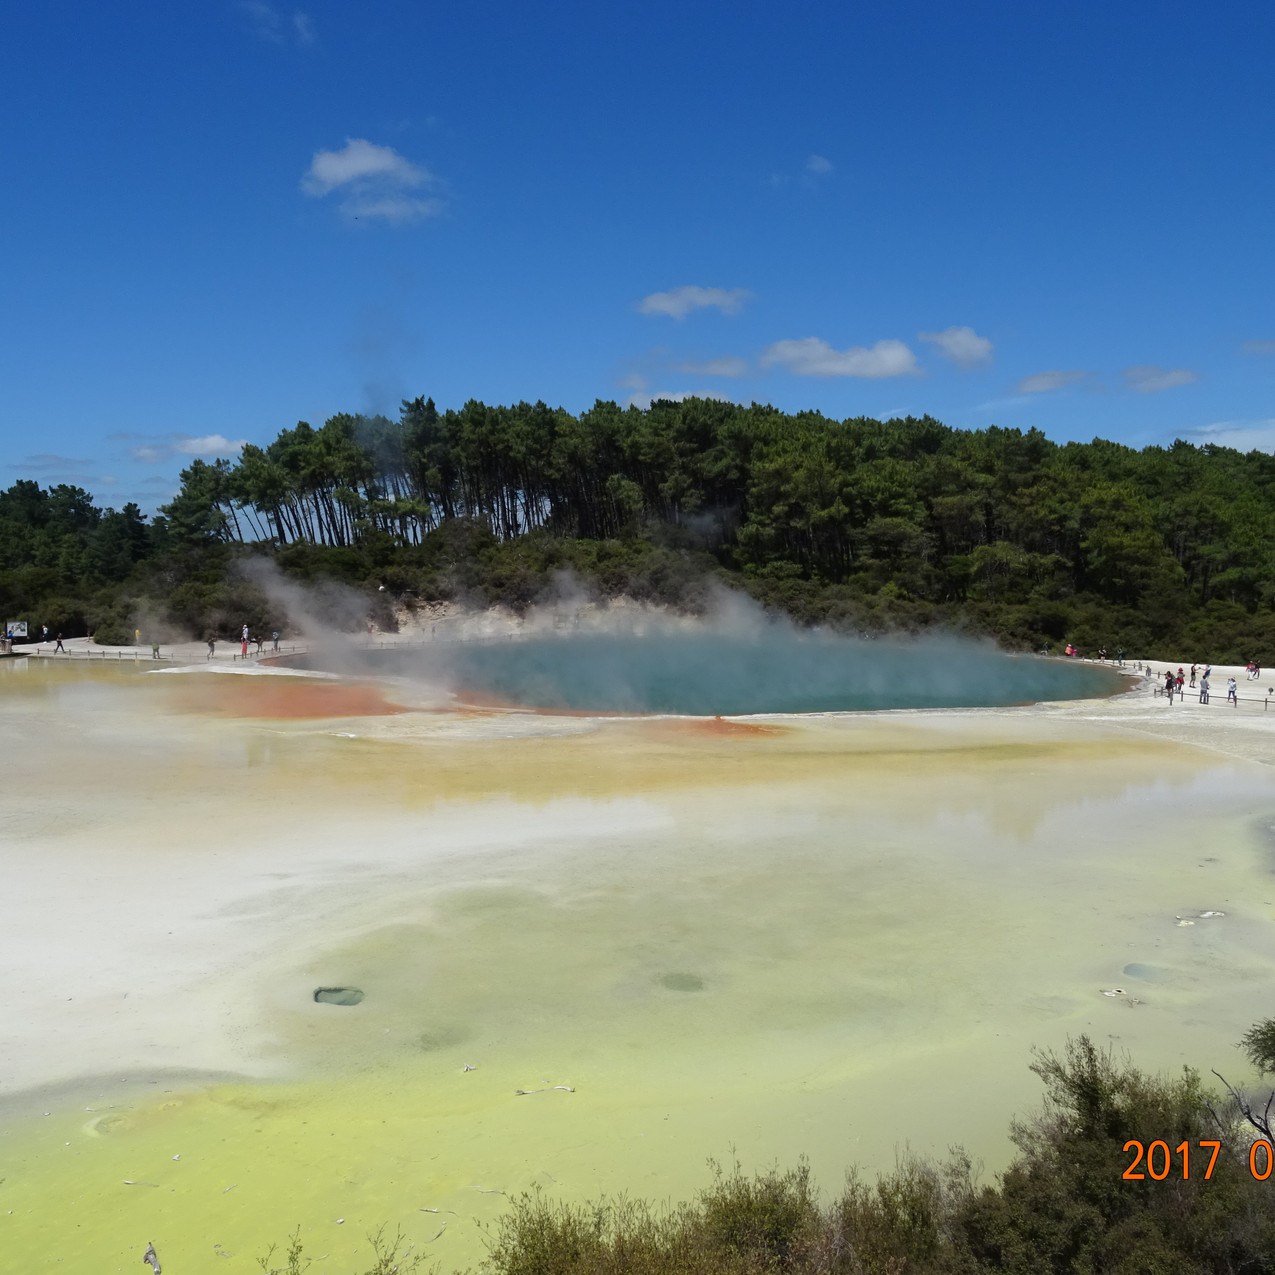 Photo 13. Geothermal activity at Wai-O-Tapu thermal wonderland